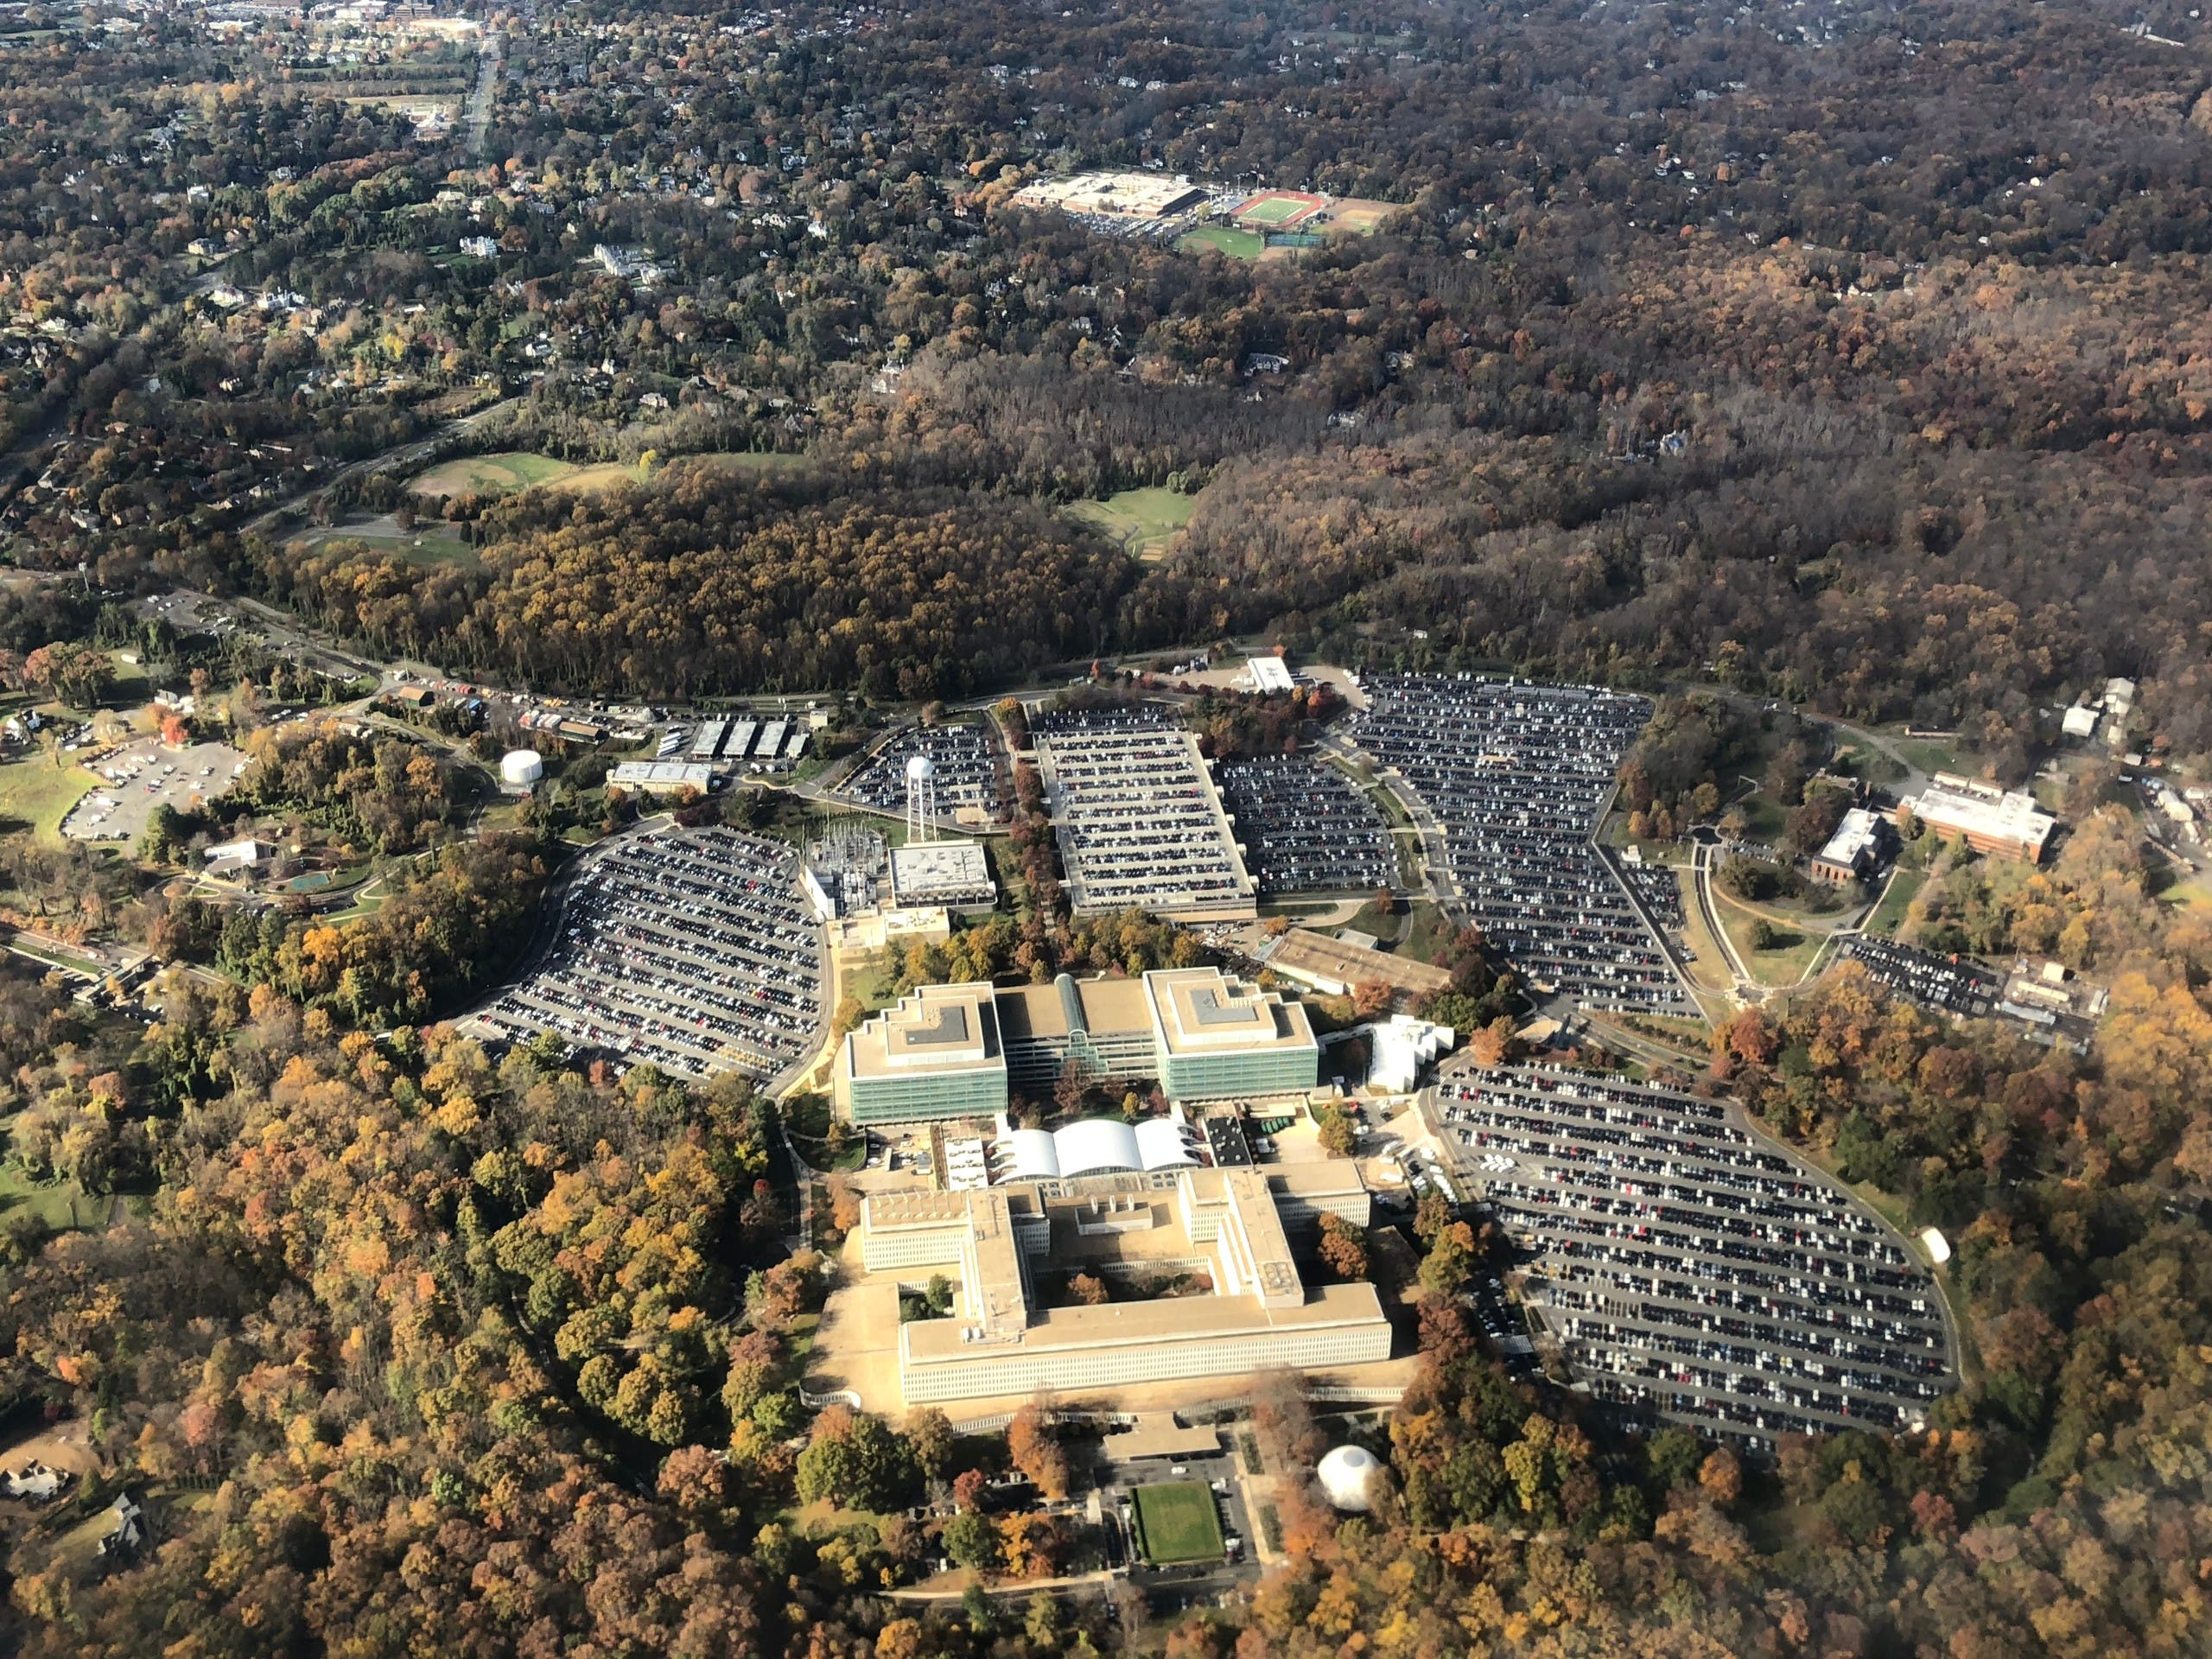 The headquarters of the Central Intelligence Agency (CIA) is seen in Langley, Virginia, United States. (File photo)